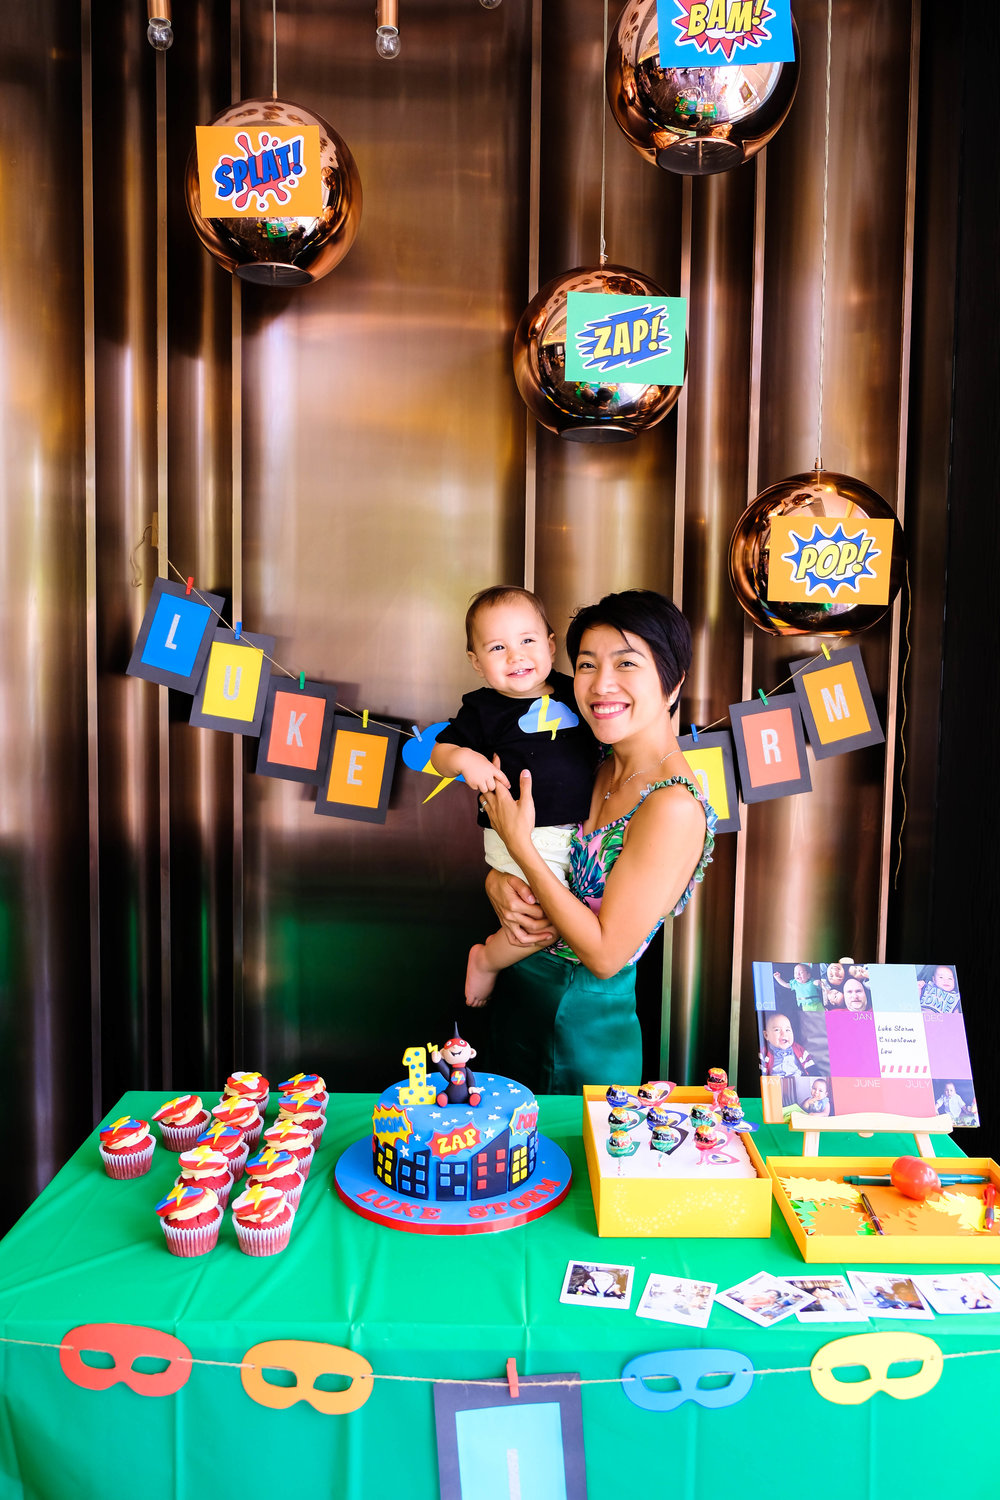 Super Luke Storm is 1! - Luke's mom lovingly made each and every detail of this party to celebrate her little boy's major milestone.